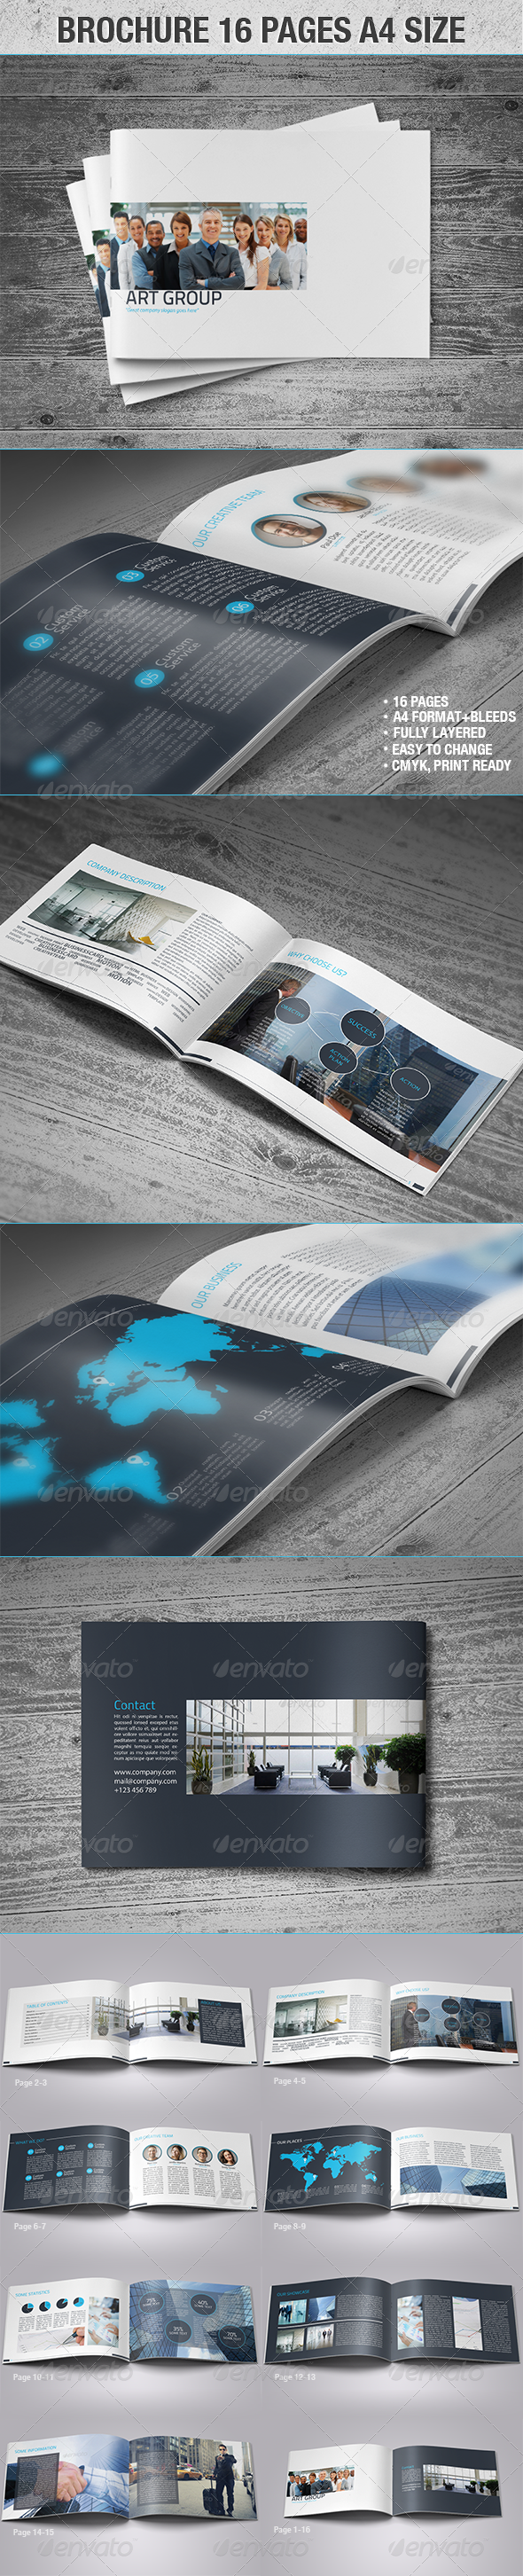 GraphicRiver Brochure 16 Page A4 Size 4297653